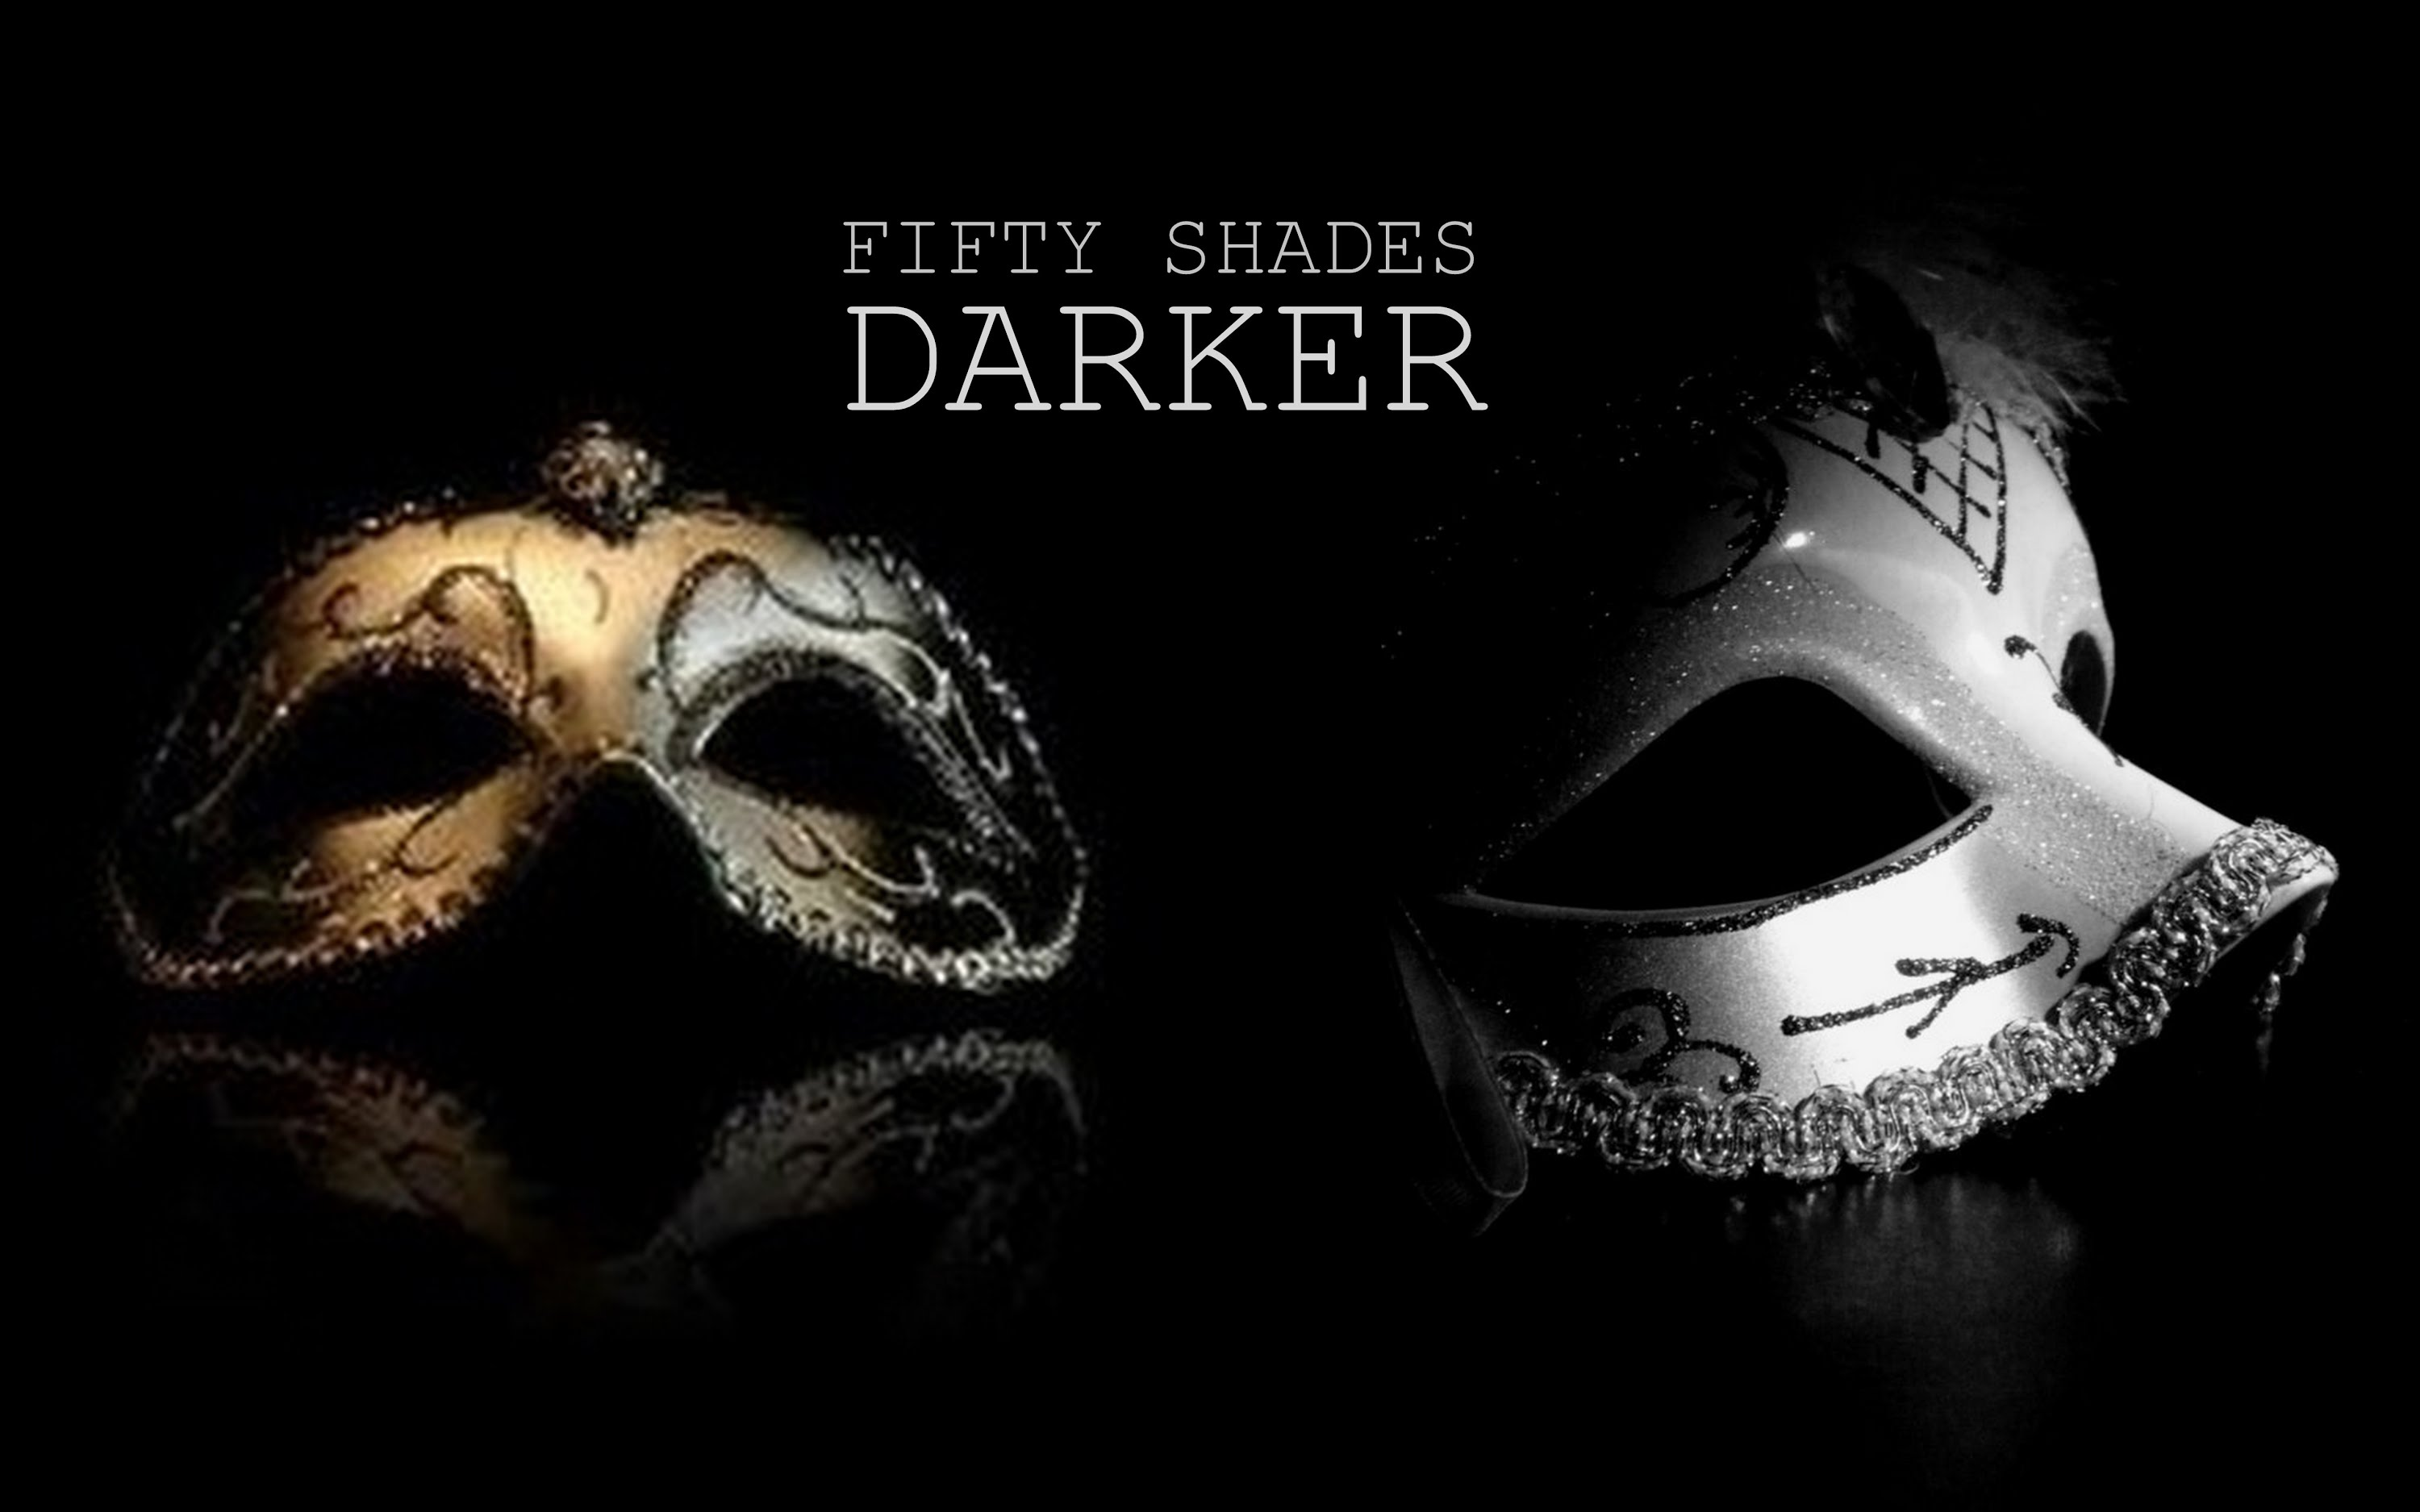 Fifty Shades Darker Hd Wallpapers 7wallpapersnet